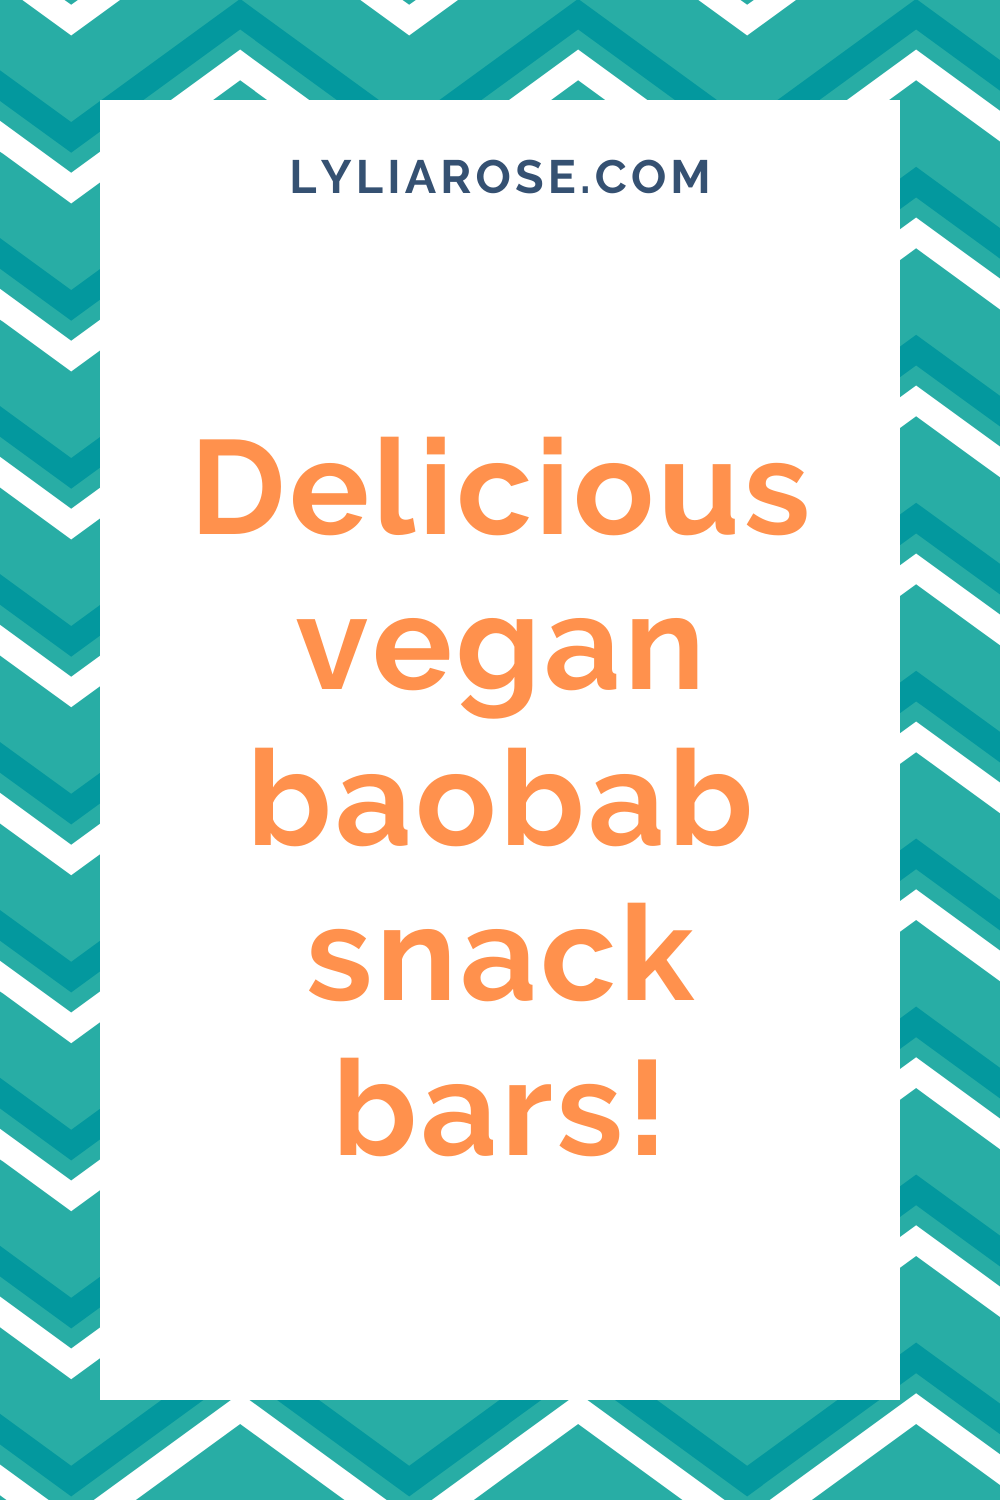 Delicious vegan baobab snack bars!